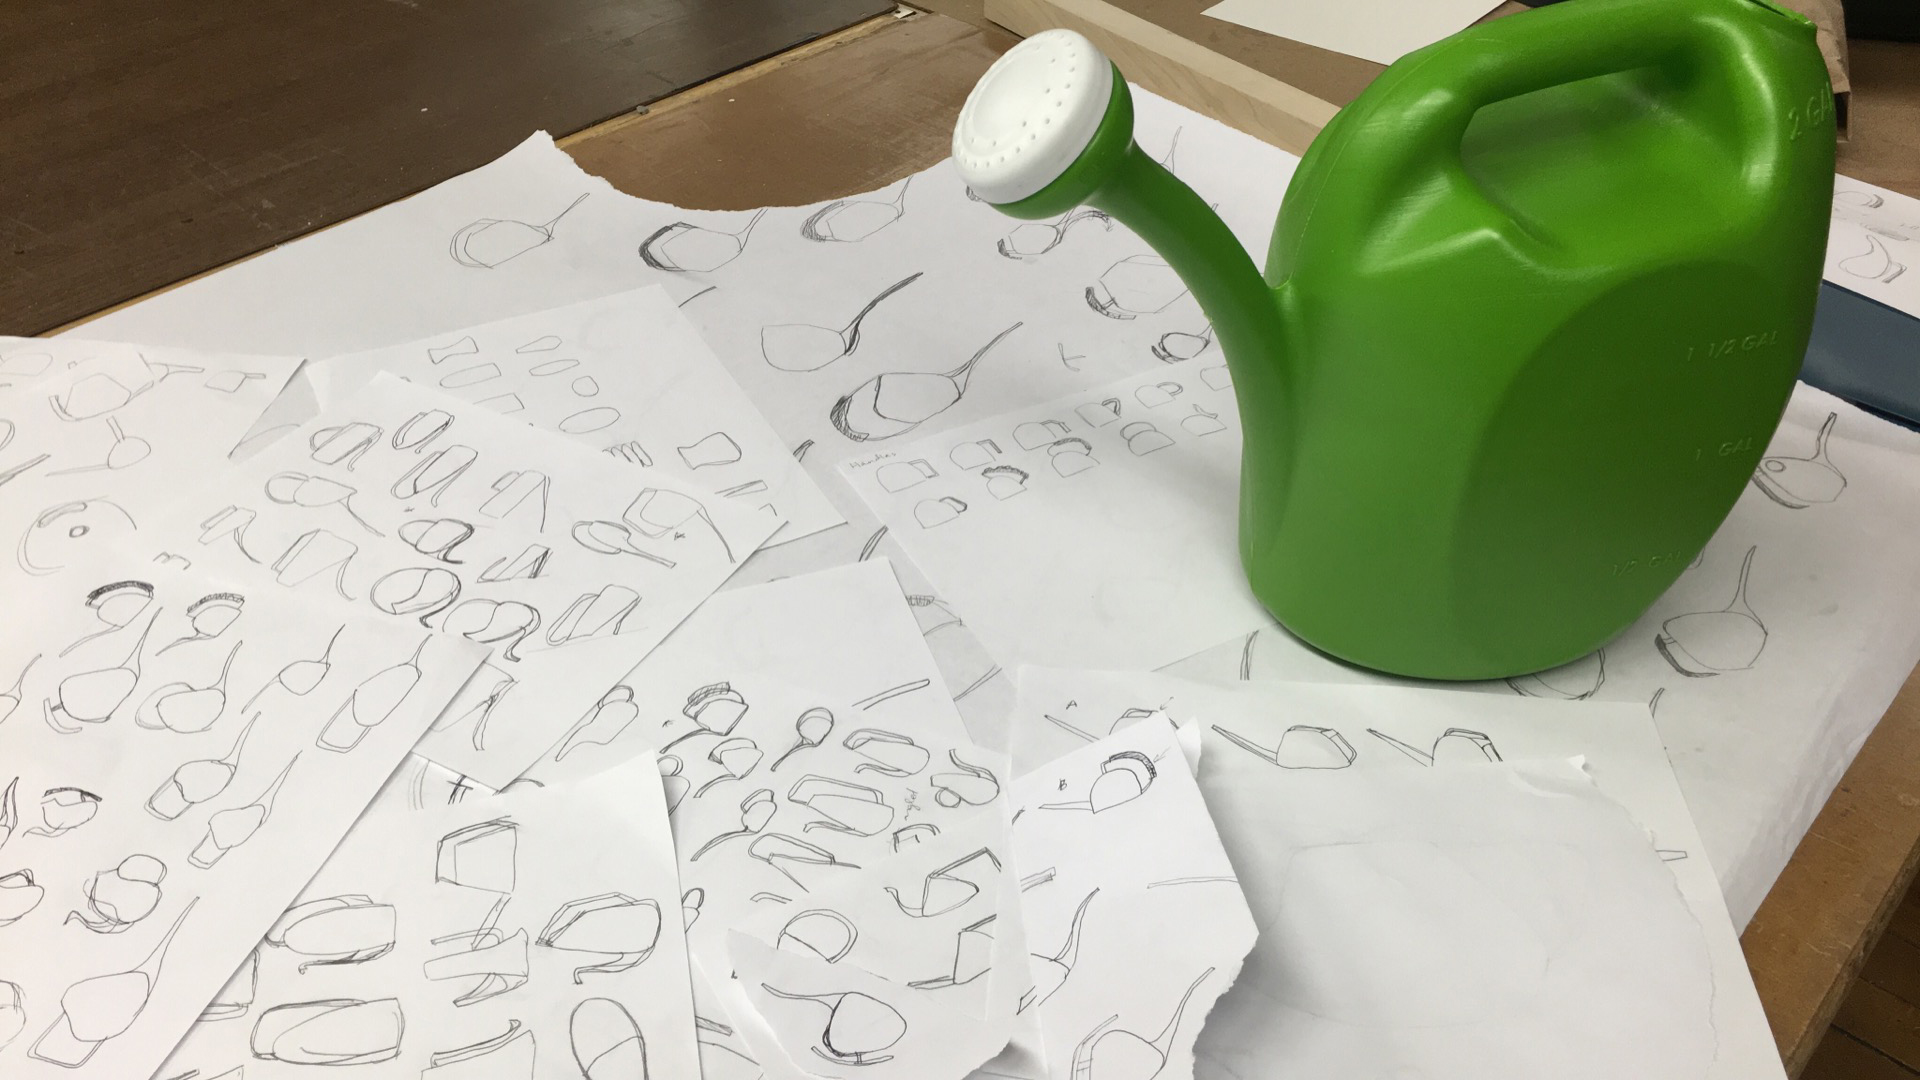 Watering Can Design (2016)